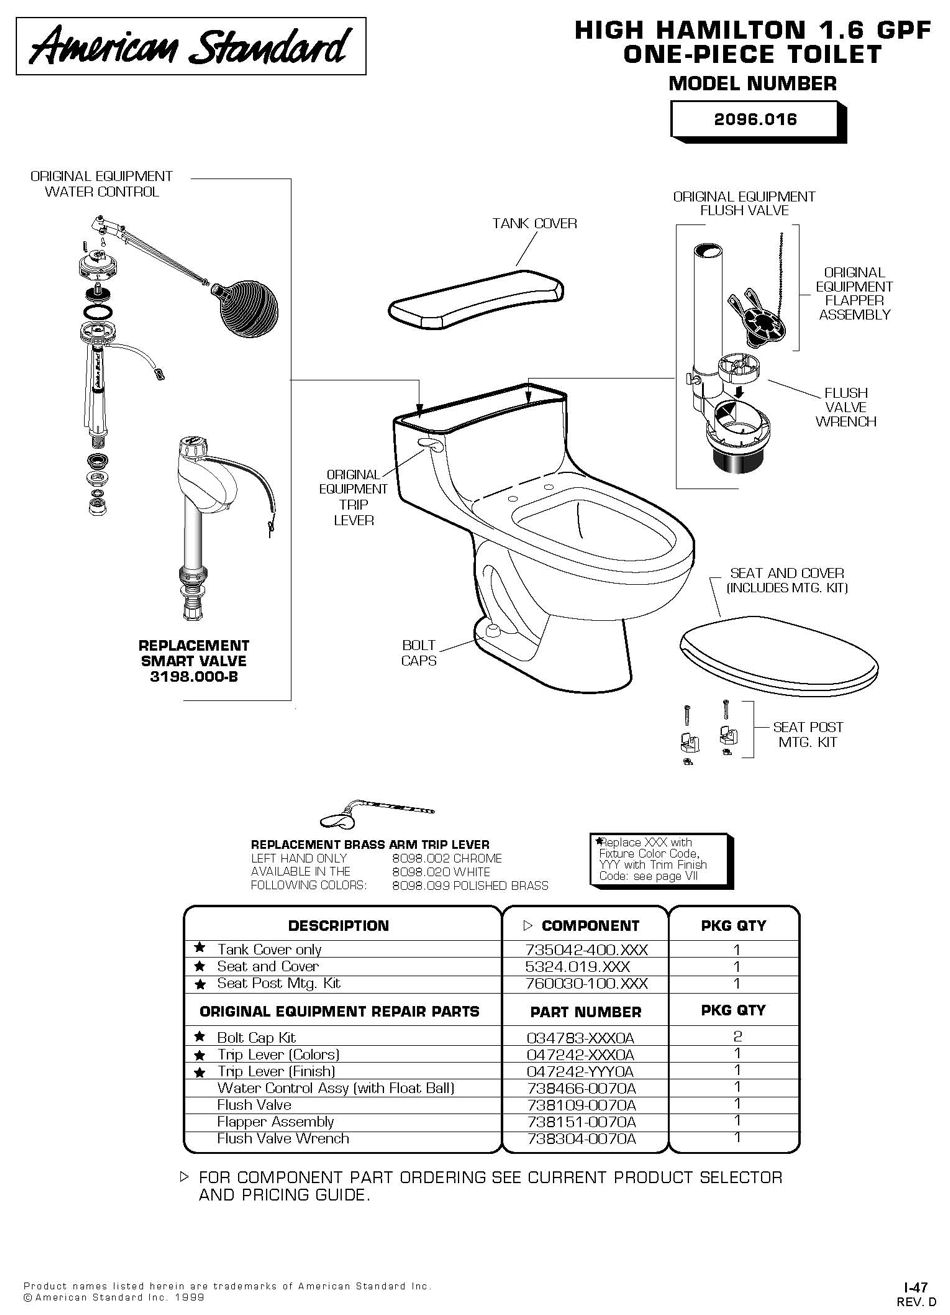 Toiletpro Com Parts Breakdown For American Standard 2096